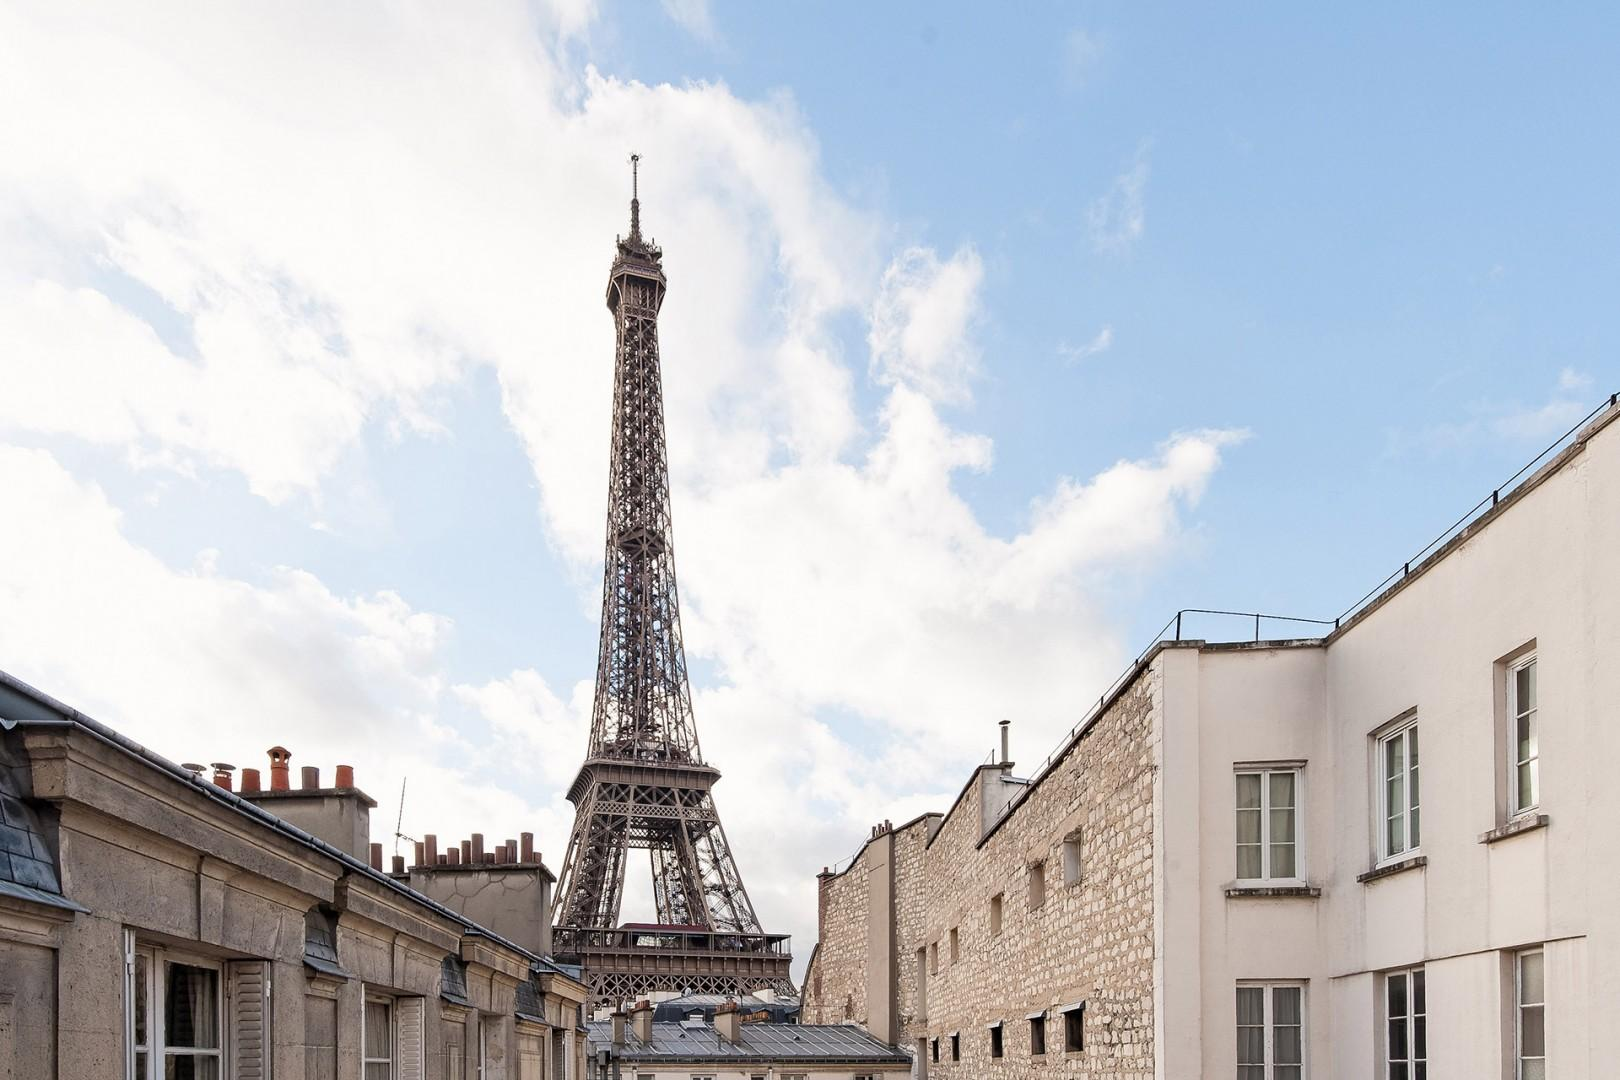 The Eiffel Tower is just minutes away!